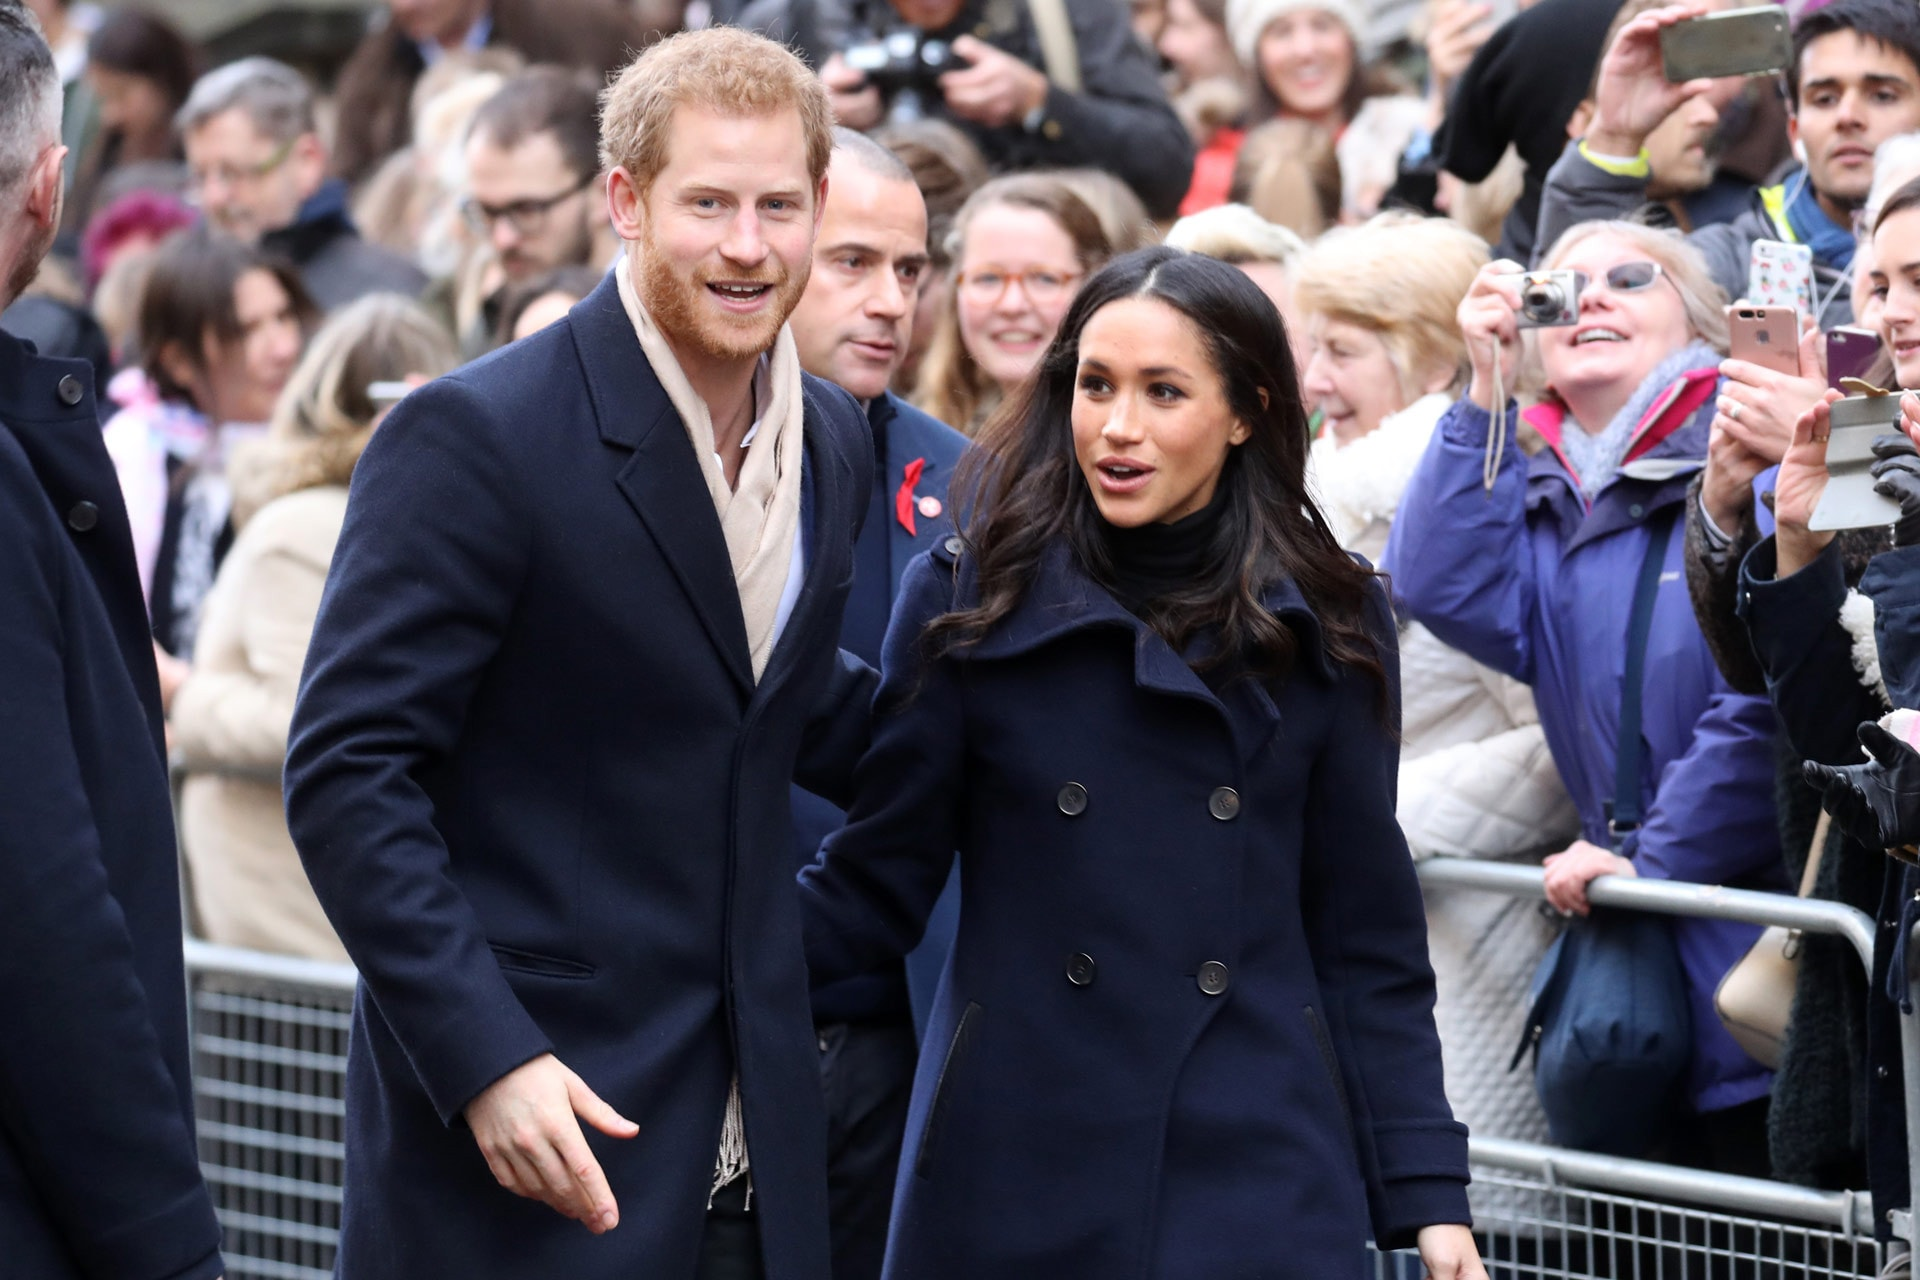 Prince Harry and Meghan Markle choose Alexi Lubomirski as wedding photographer